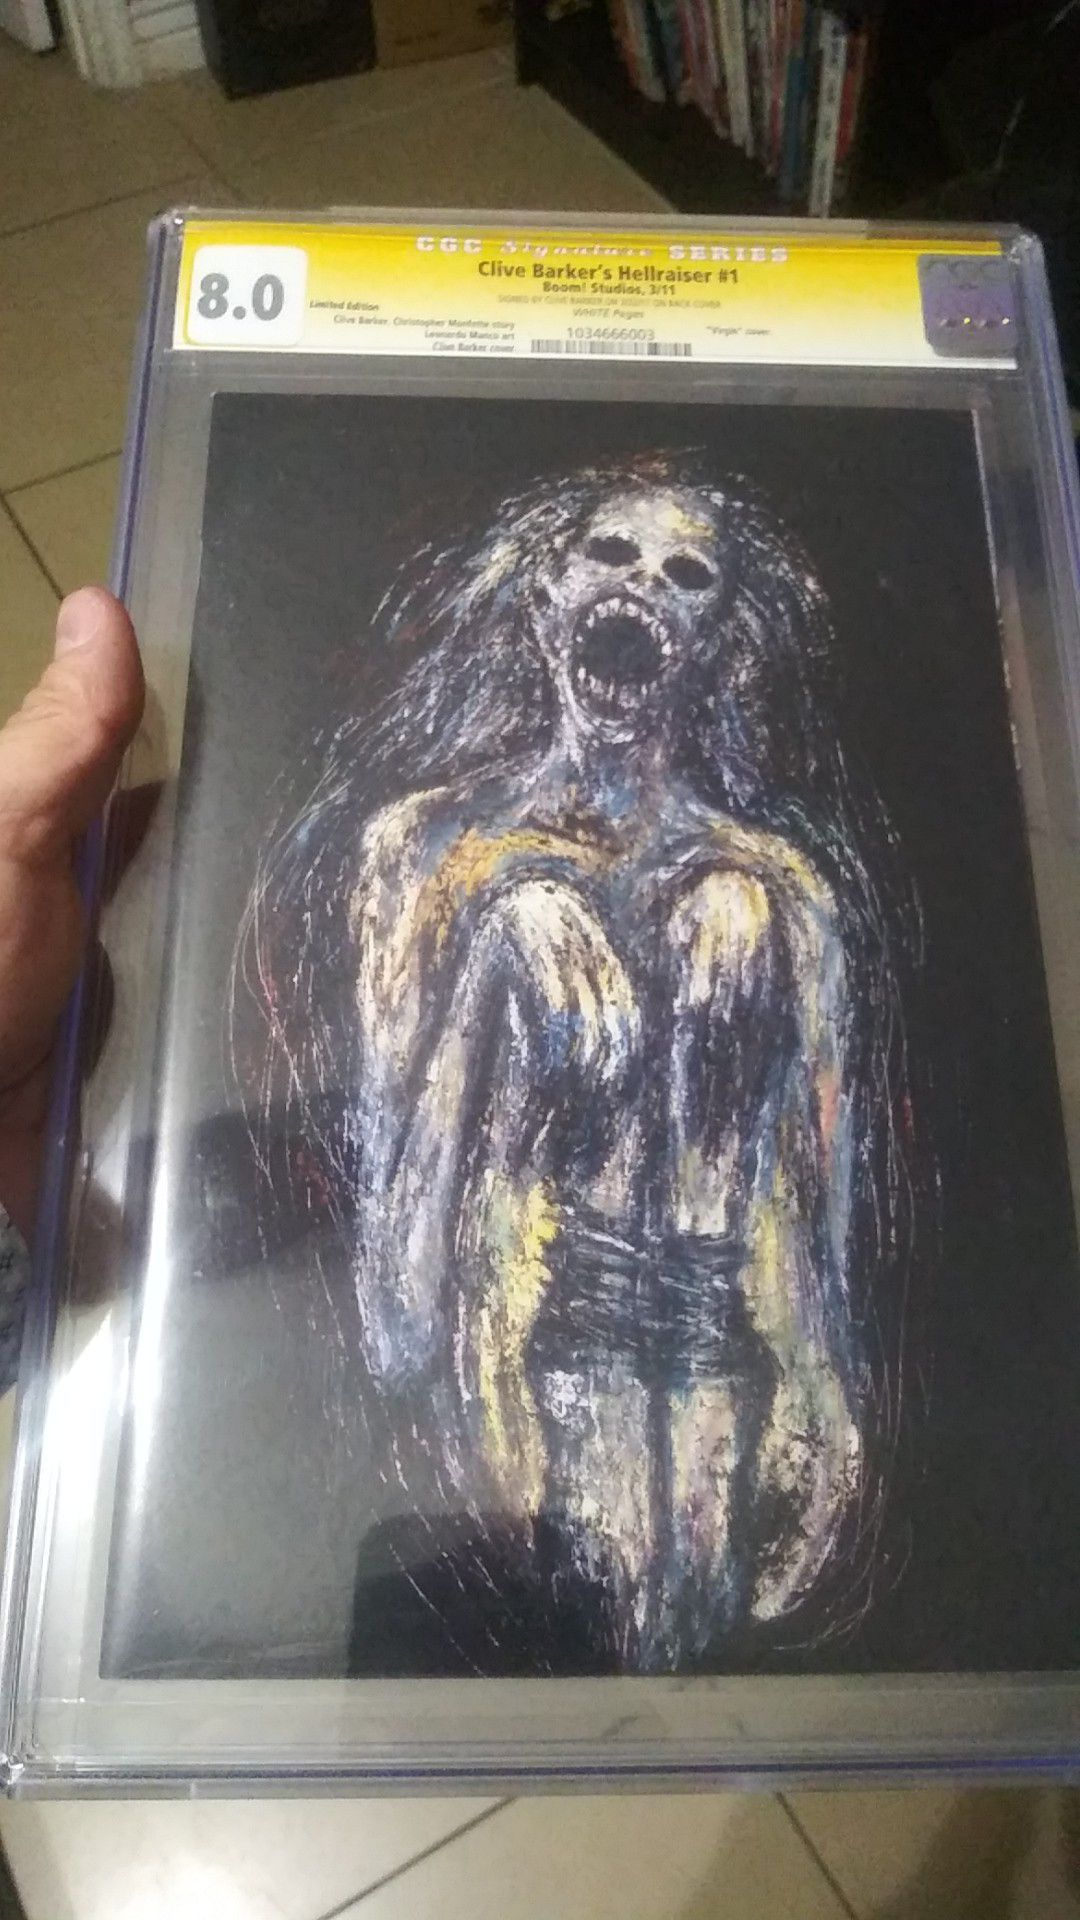 Hellraiser 1 limited edition Clive Barker signed rare comic